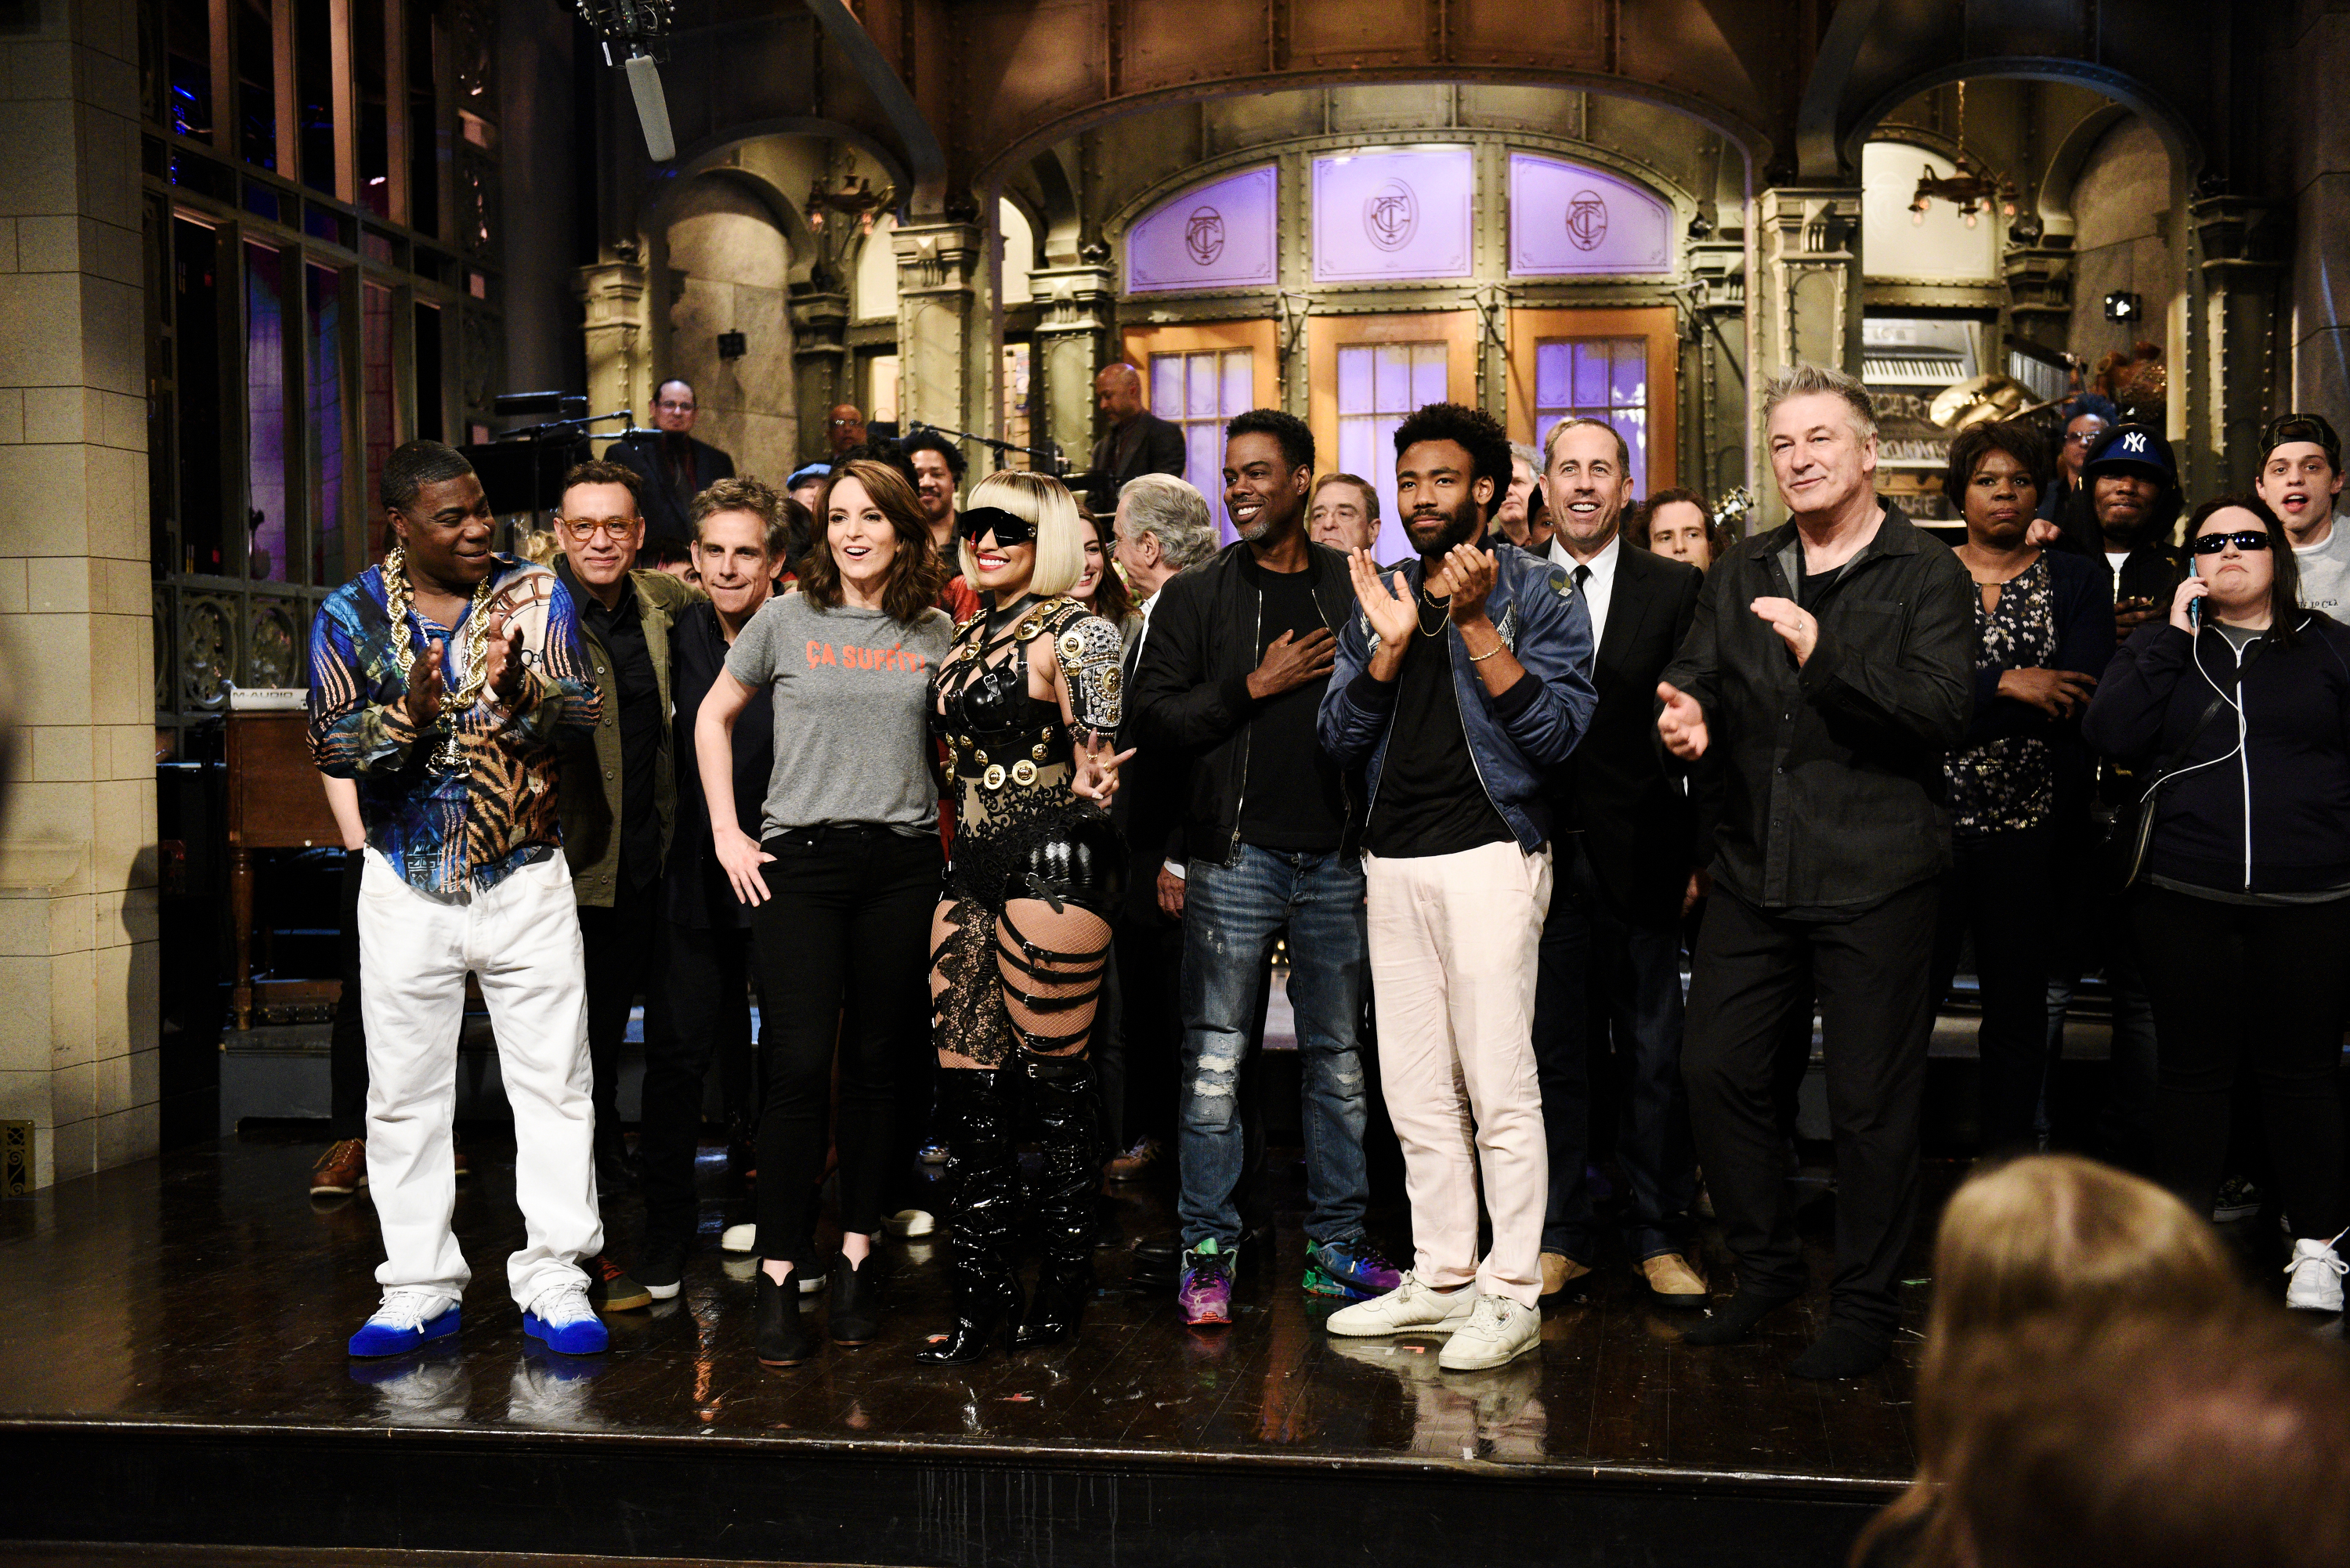 SATURDAY NIGHT LIVE --  Tina Fey  Episode 1746 -- Pictured: (l-r) Tracy Morgan, Fred Armisen, Ben Stiller, Host Tina Fey, Musical Guest Nicki Minaj, Chris Rock, Donald Glover, Jerry Seinfeld,  Alec Baldwin during  Goodnights & Credits  in Studio 8H on Saturday, May 19, 2018.